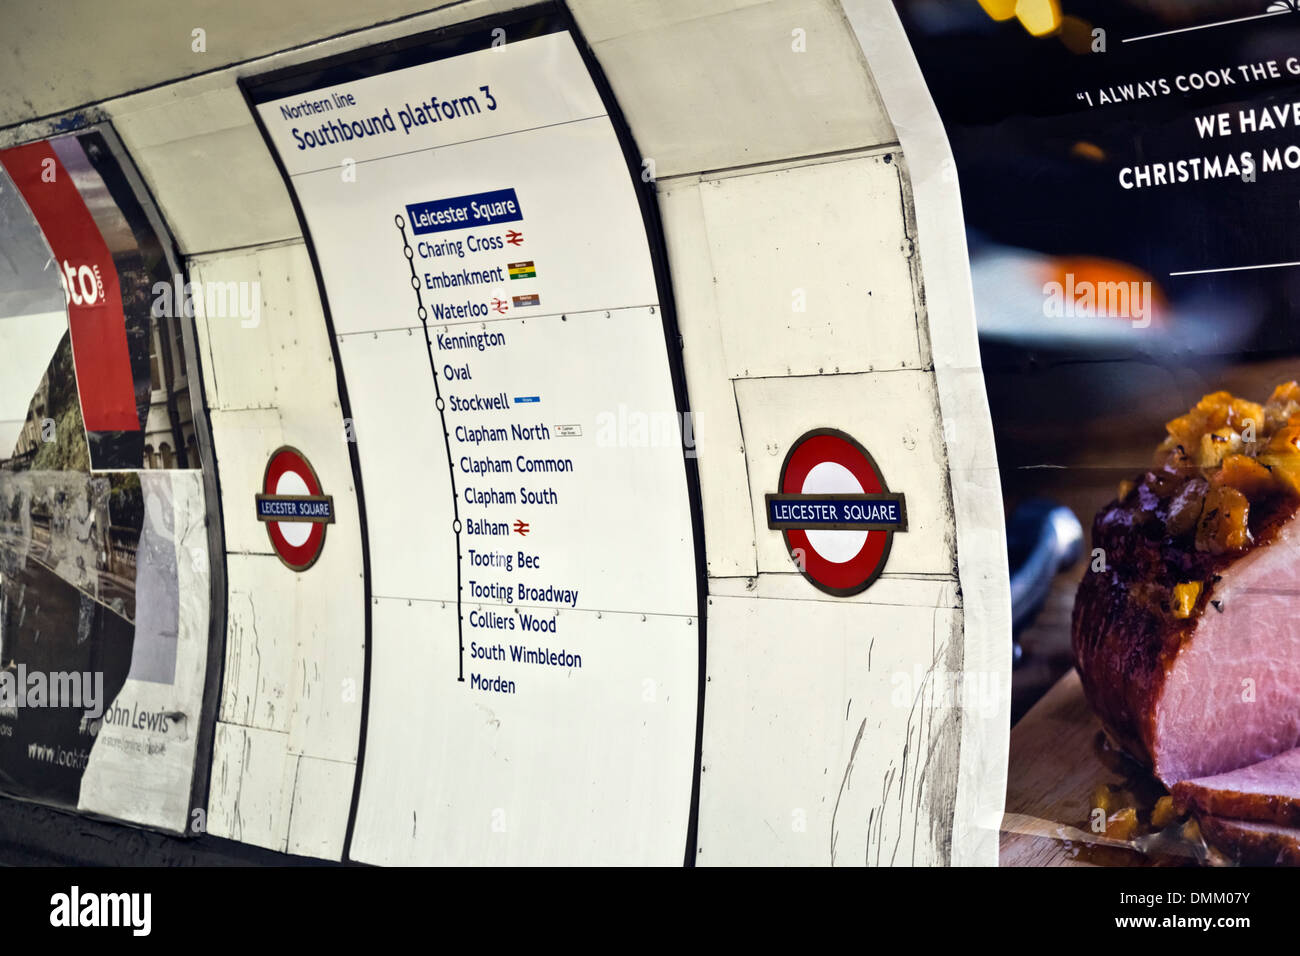 Leicester Square tube station, Northern Line southbound platform 3, London Underground, England - Stock Image